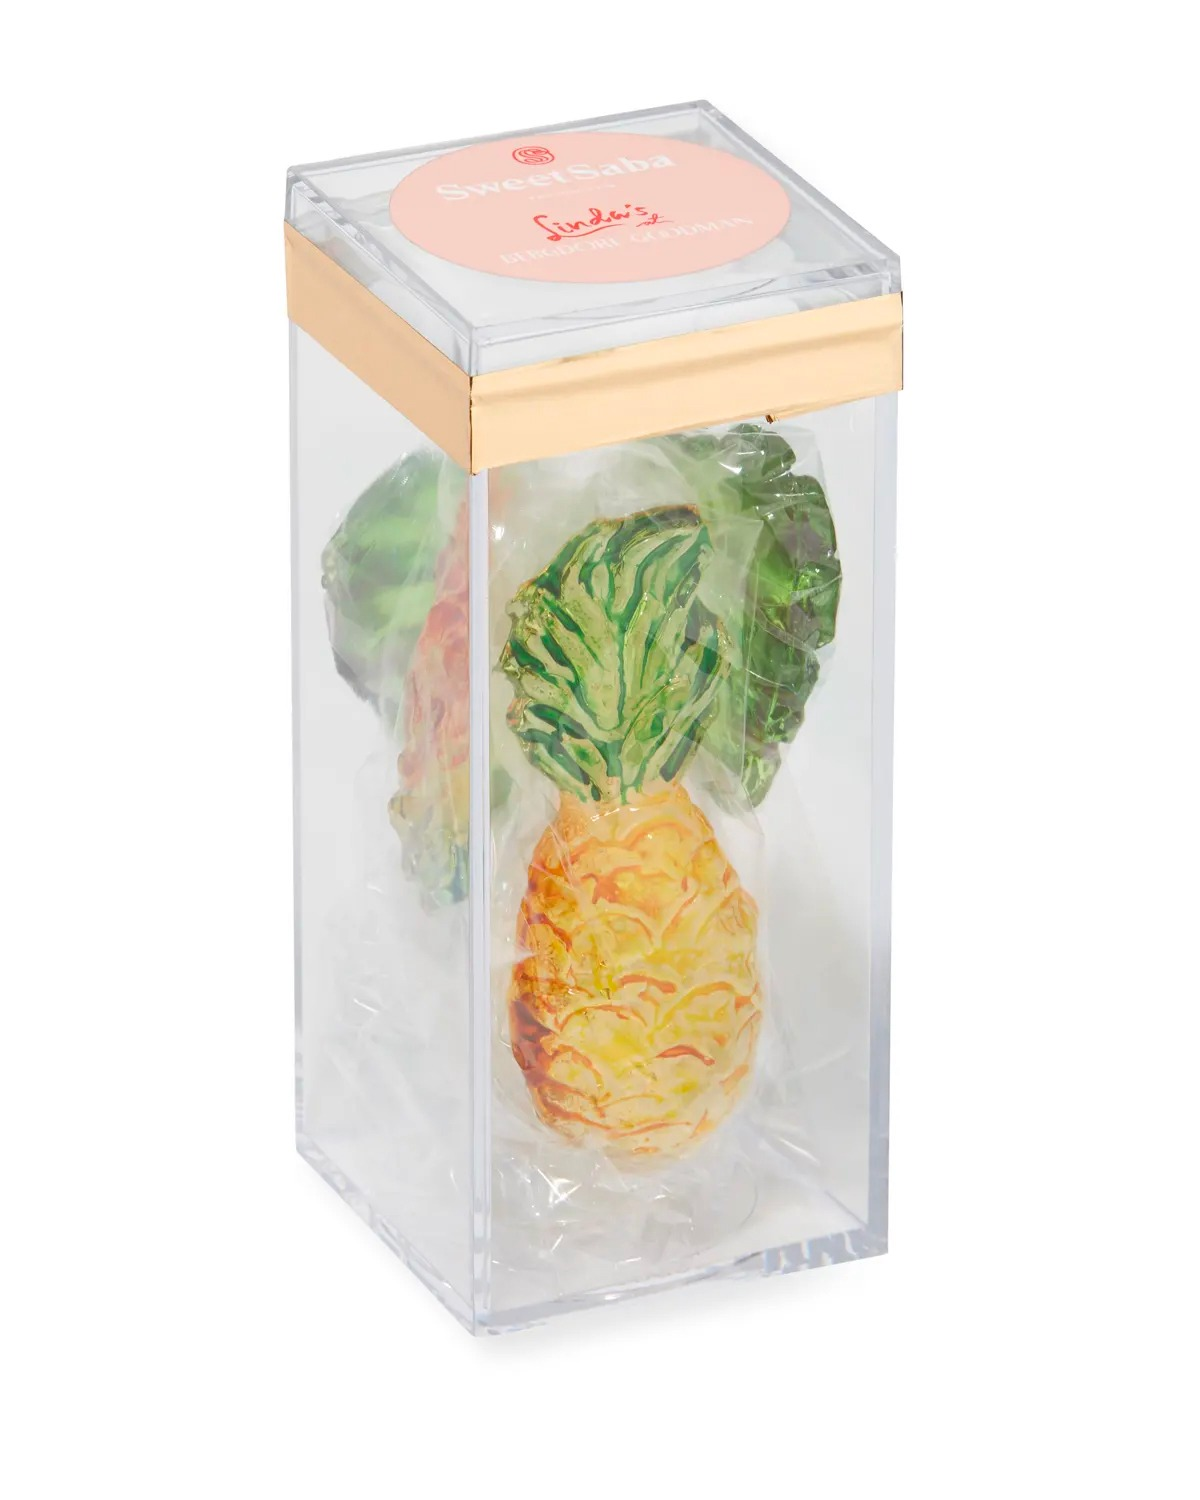 A photograph of a candy pineapple in a clear jewelry box.